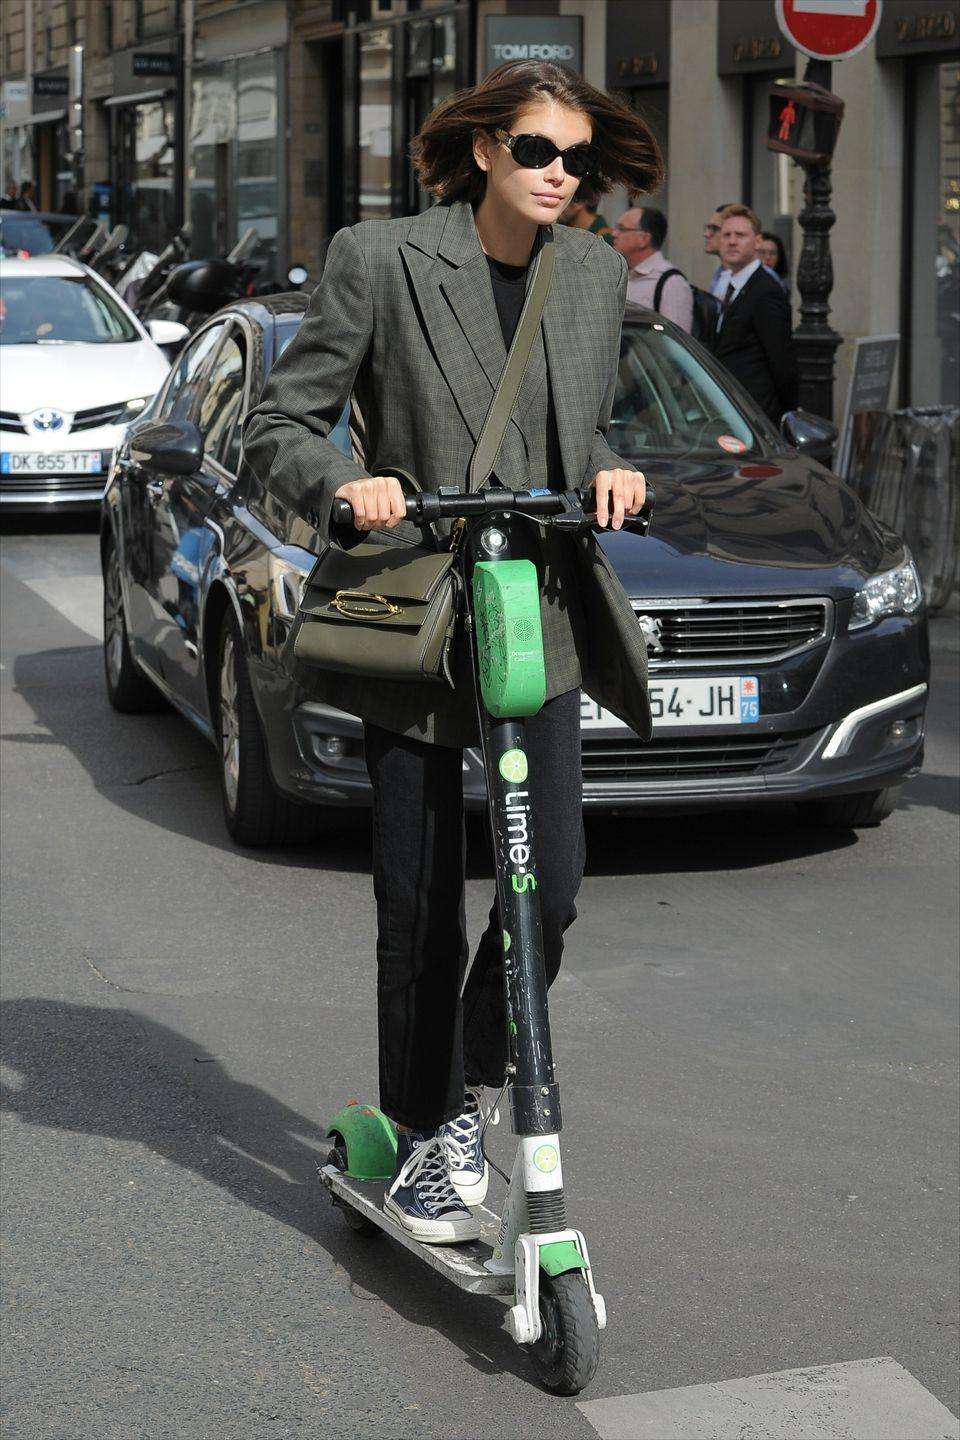 """<p>The model was spotted darting about in Paris on a scooter, wearing a paired down look with the new Alexander McQueen<a href=""""https://www.elle.com/uk/fashion/g21202204/designer-bags-we-want-to-splash-our-cash-on/?slide=2"""" rel=""""nofollow noopener"""" target=""""_blank"""" data-ylk=""""slk:Story bag"""" class=""""link rapid-noclick-resp""""> Story bag</a>. </p>"""